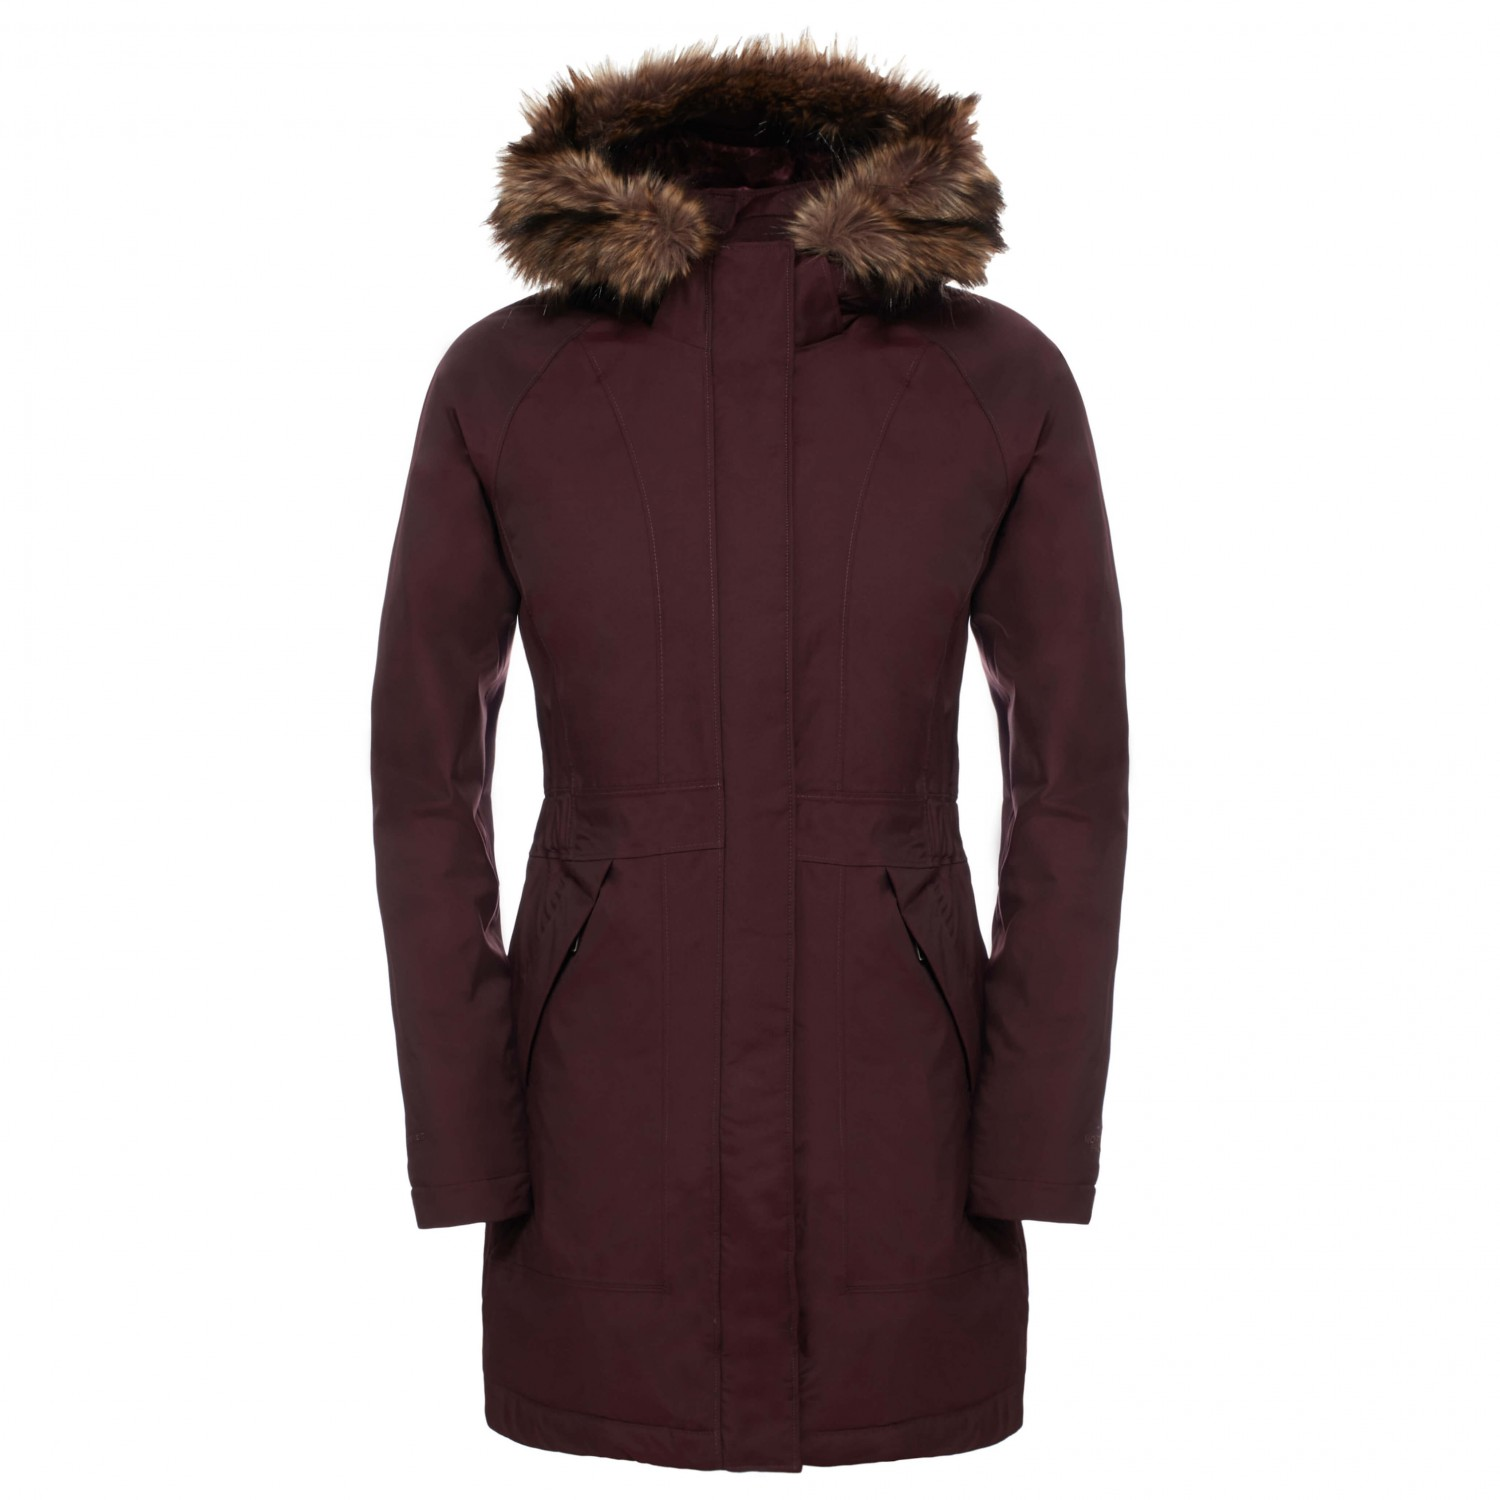 The North Face Parka Mantel >> The North Face - Women's Arctic Parka - Wintermantel | Versandkostenfrei | Bergfreunde.de